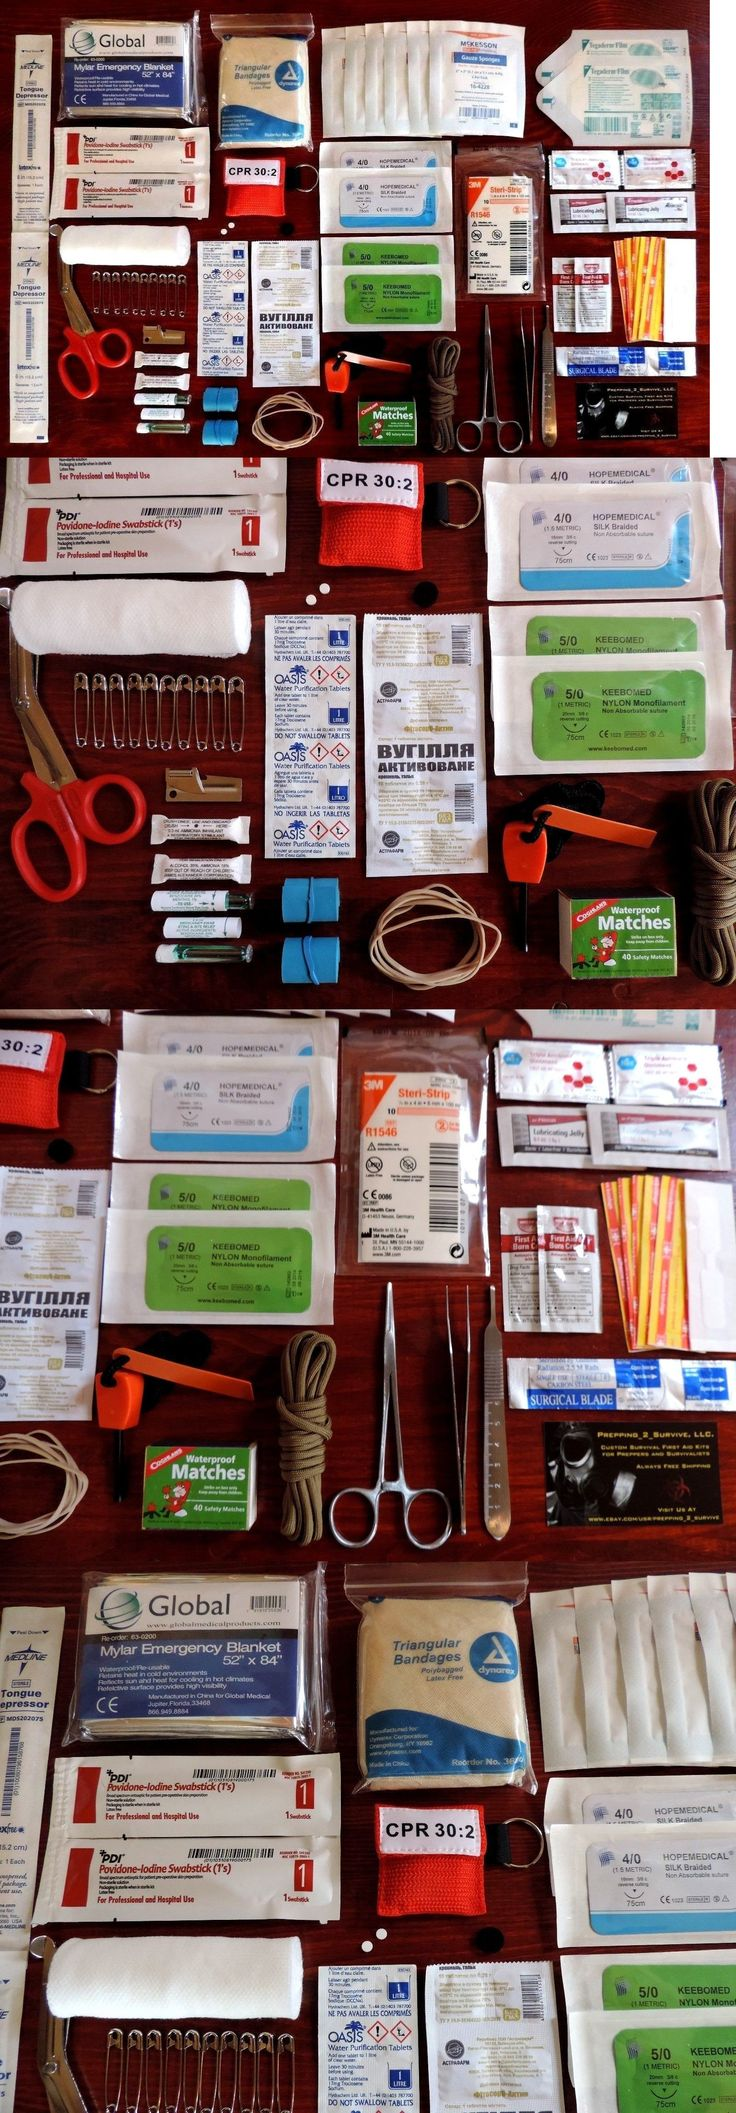 Kits and Bags: Survival First Aid Kit - Bug Out Bag - Emergenc Trauma Surgical Suture Kit -> BUY IT NOW ONLY: $38.94 on eBay!